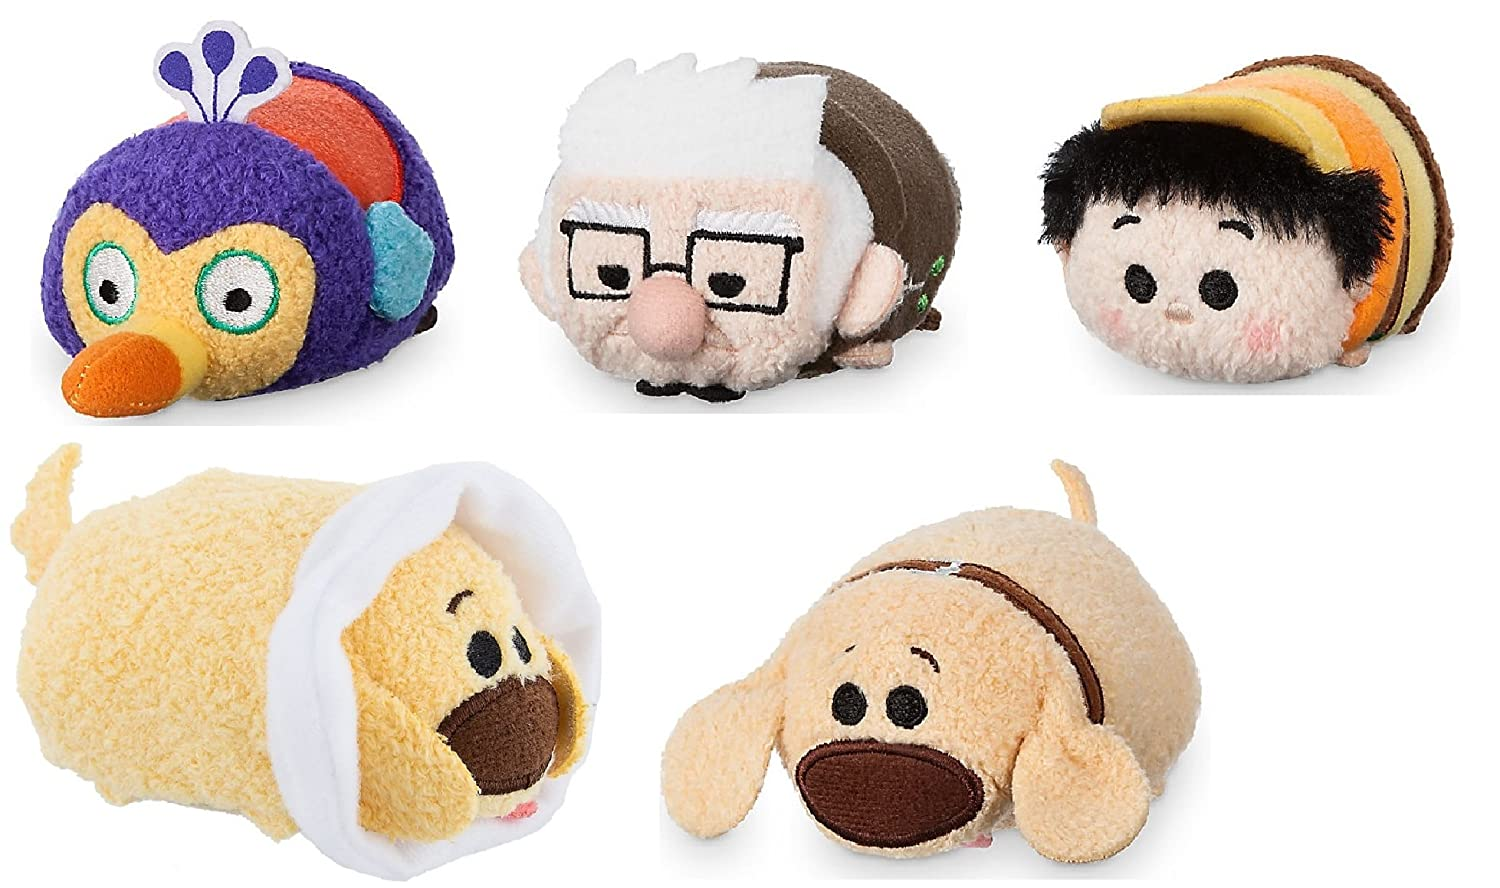 "Amazon.com: Disney Store Mini Tsum Tsum Up Set of 5 Stuffed Plush 3.5"" Toys Carl Russell Kevin Dug and Cone Dug: Toys & Games"